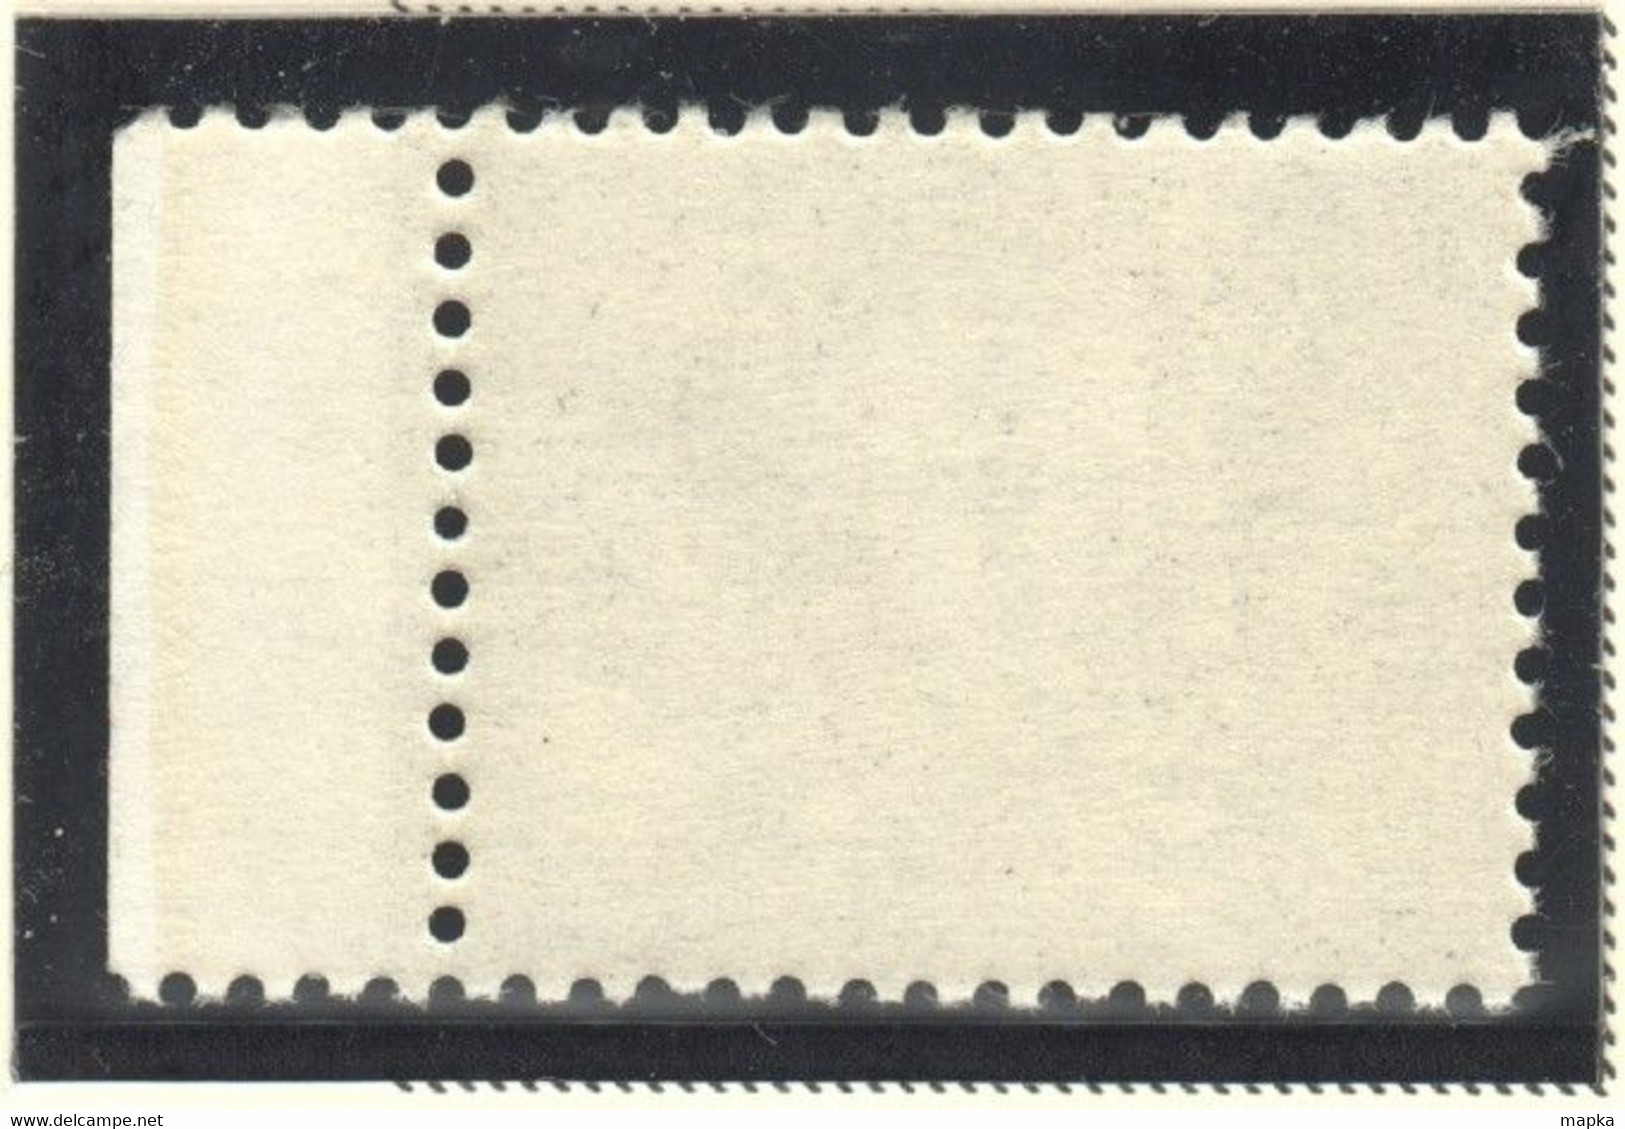 SP455 1952 PORTUGAL OFFICIAL STAMPS COAT OF ARMS MICHEL #2 1ST MNH - Nuevos